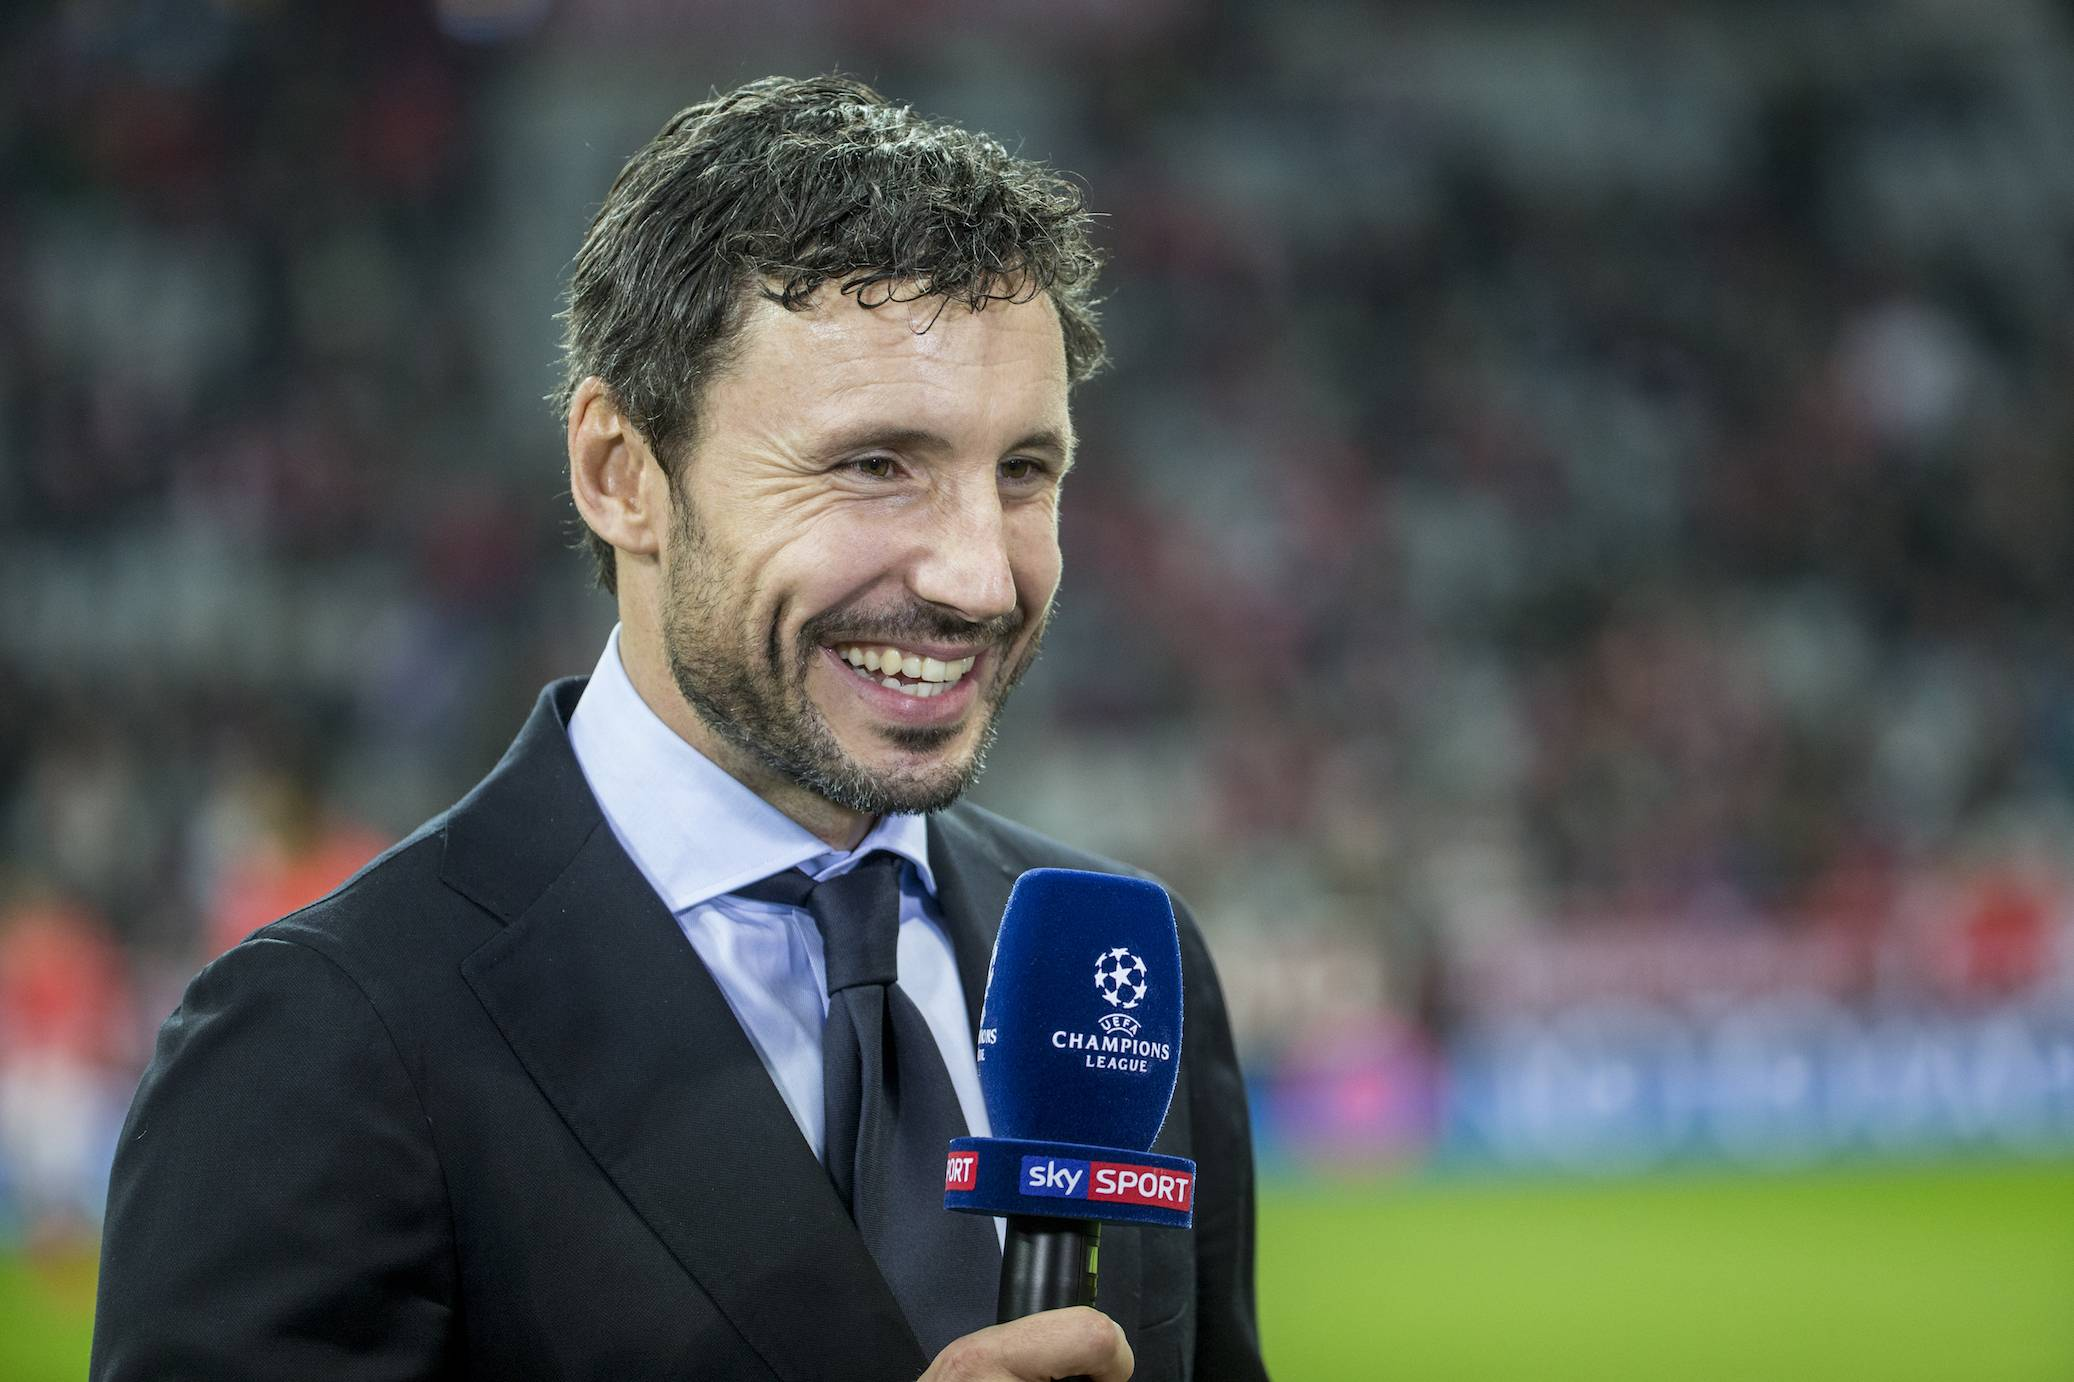 Mark van Bommel joins Bert van Marwijk as assistant coach for Australia